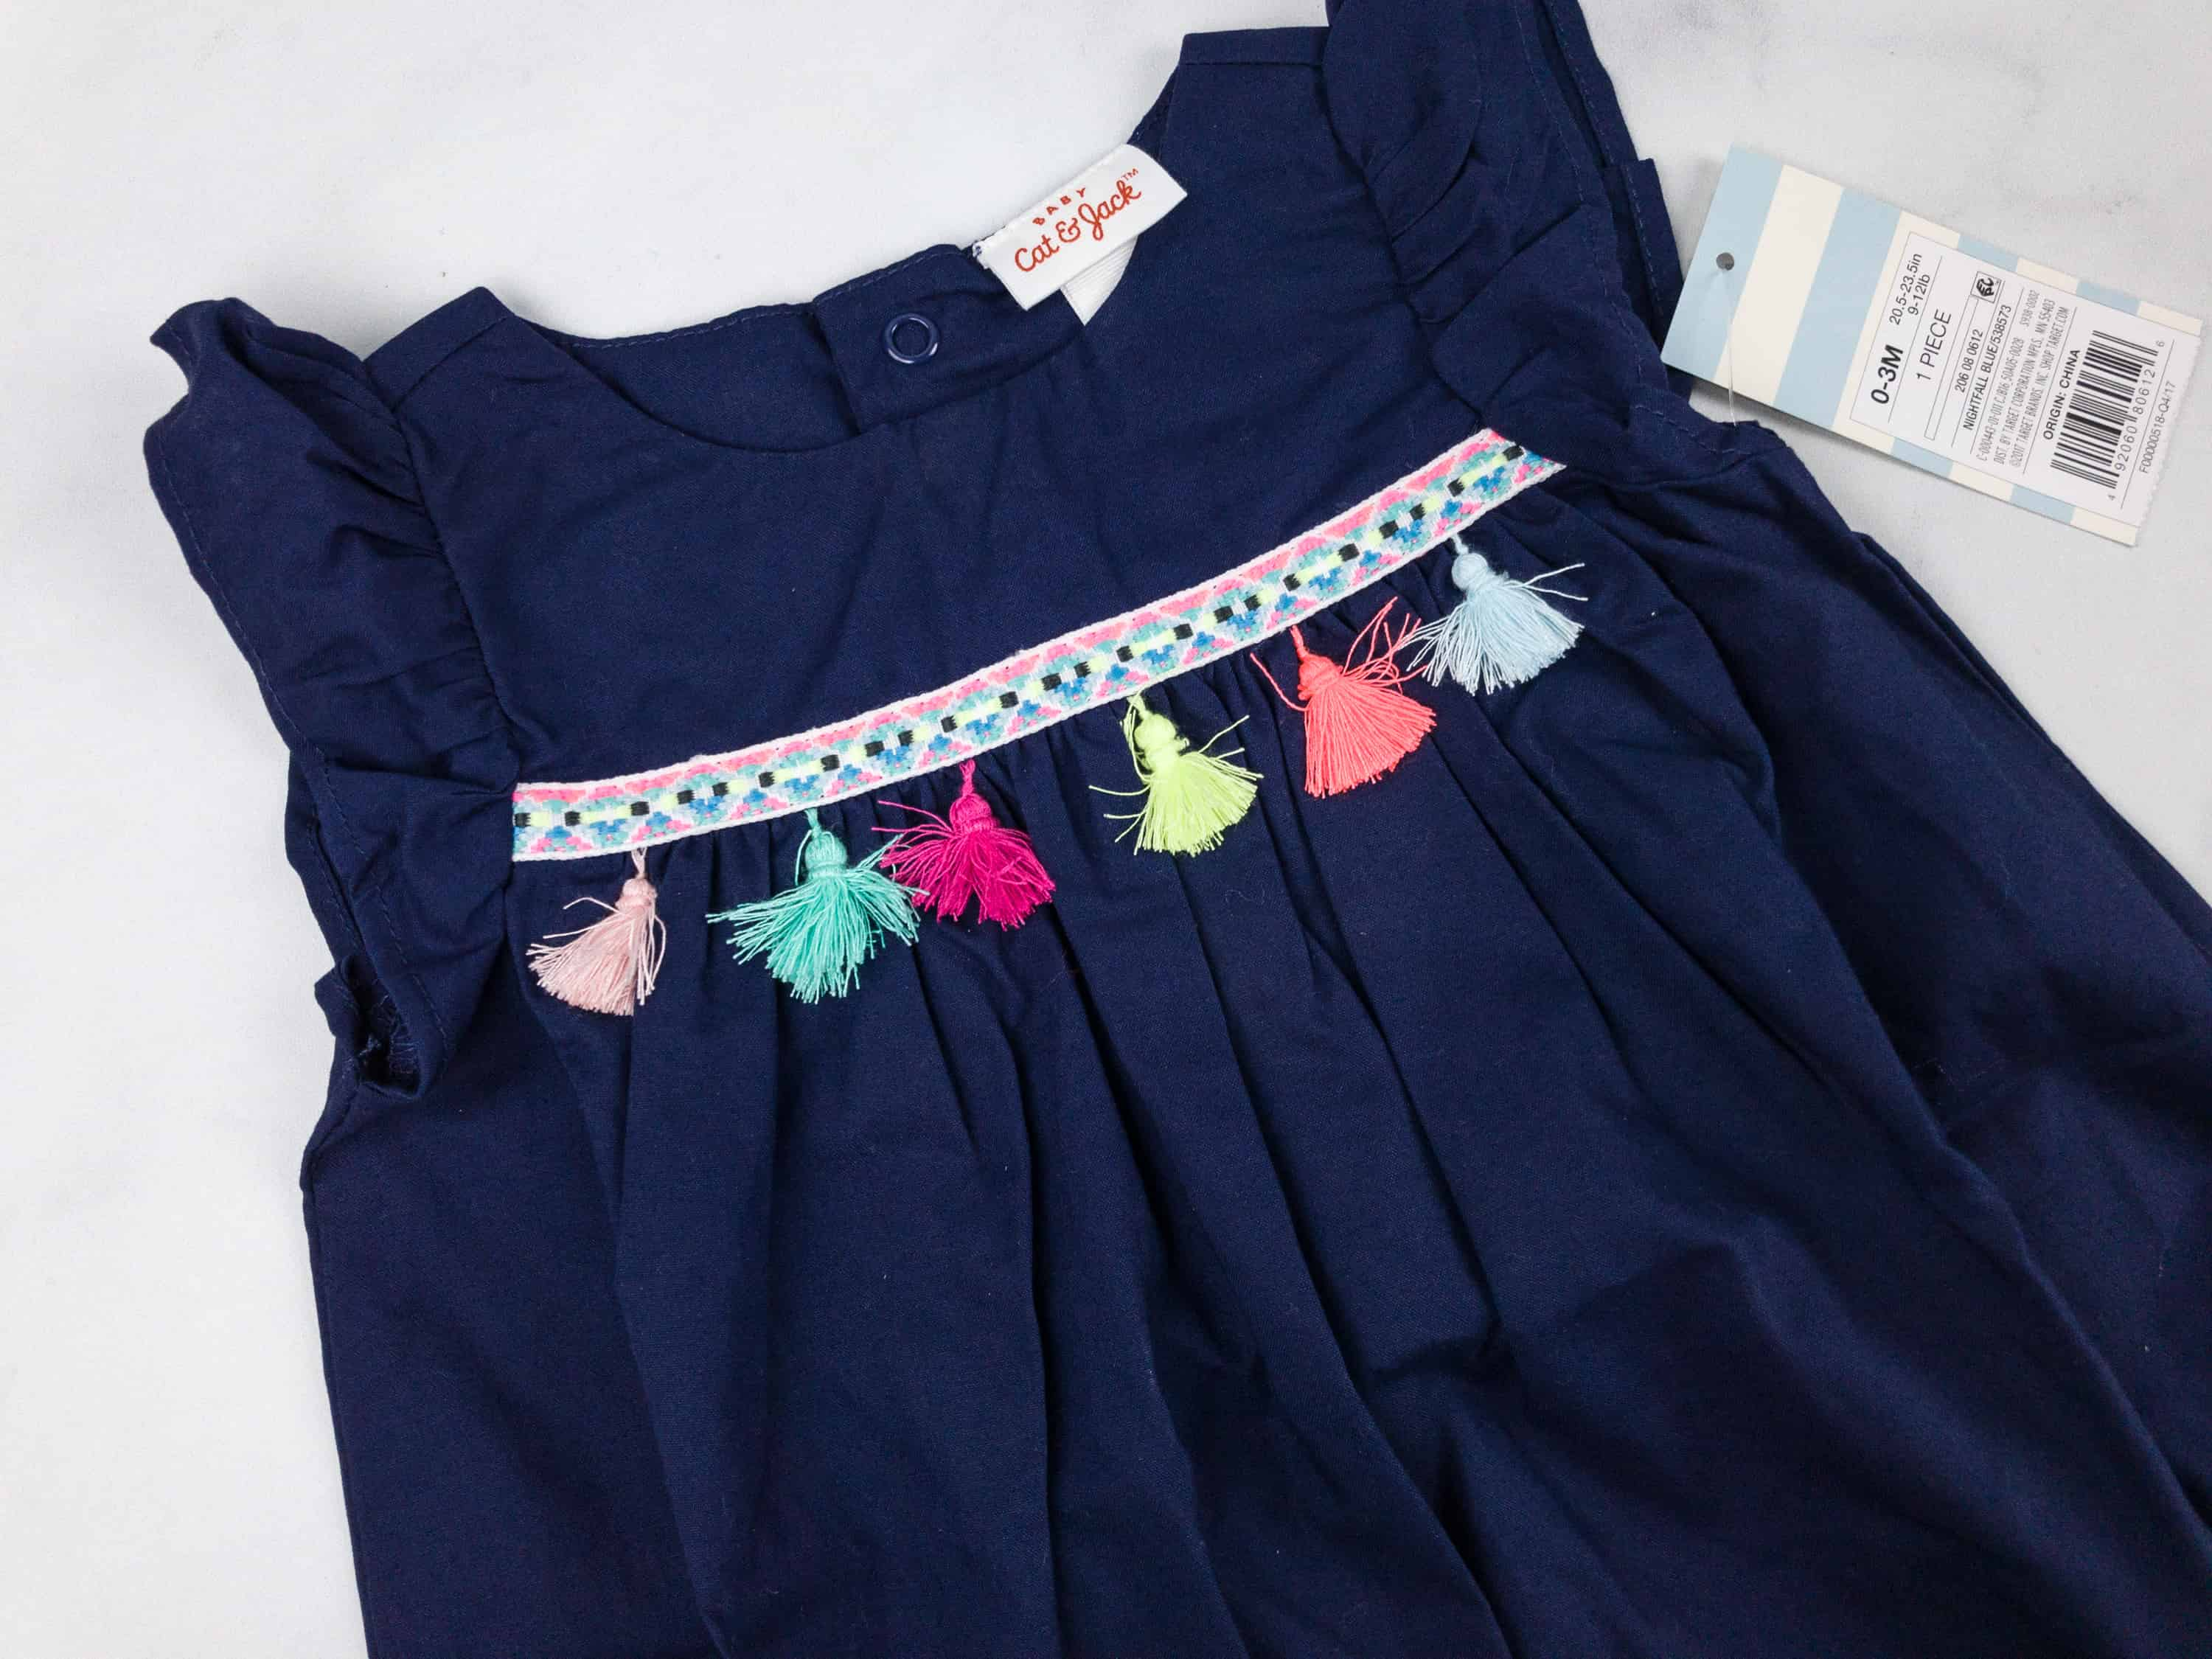 86edee68d1c1 This navy blue romper was decorated with tassels to make it look more fun  and colorful!